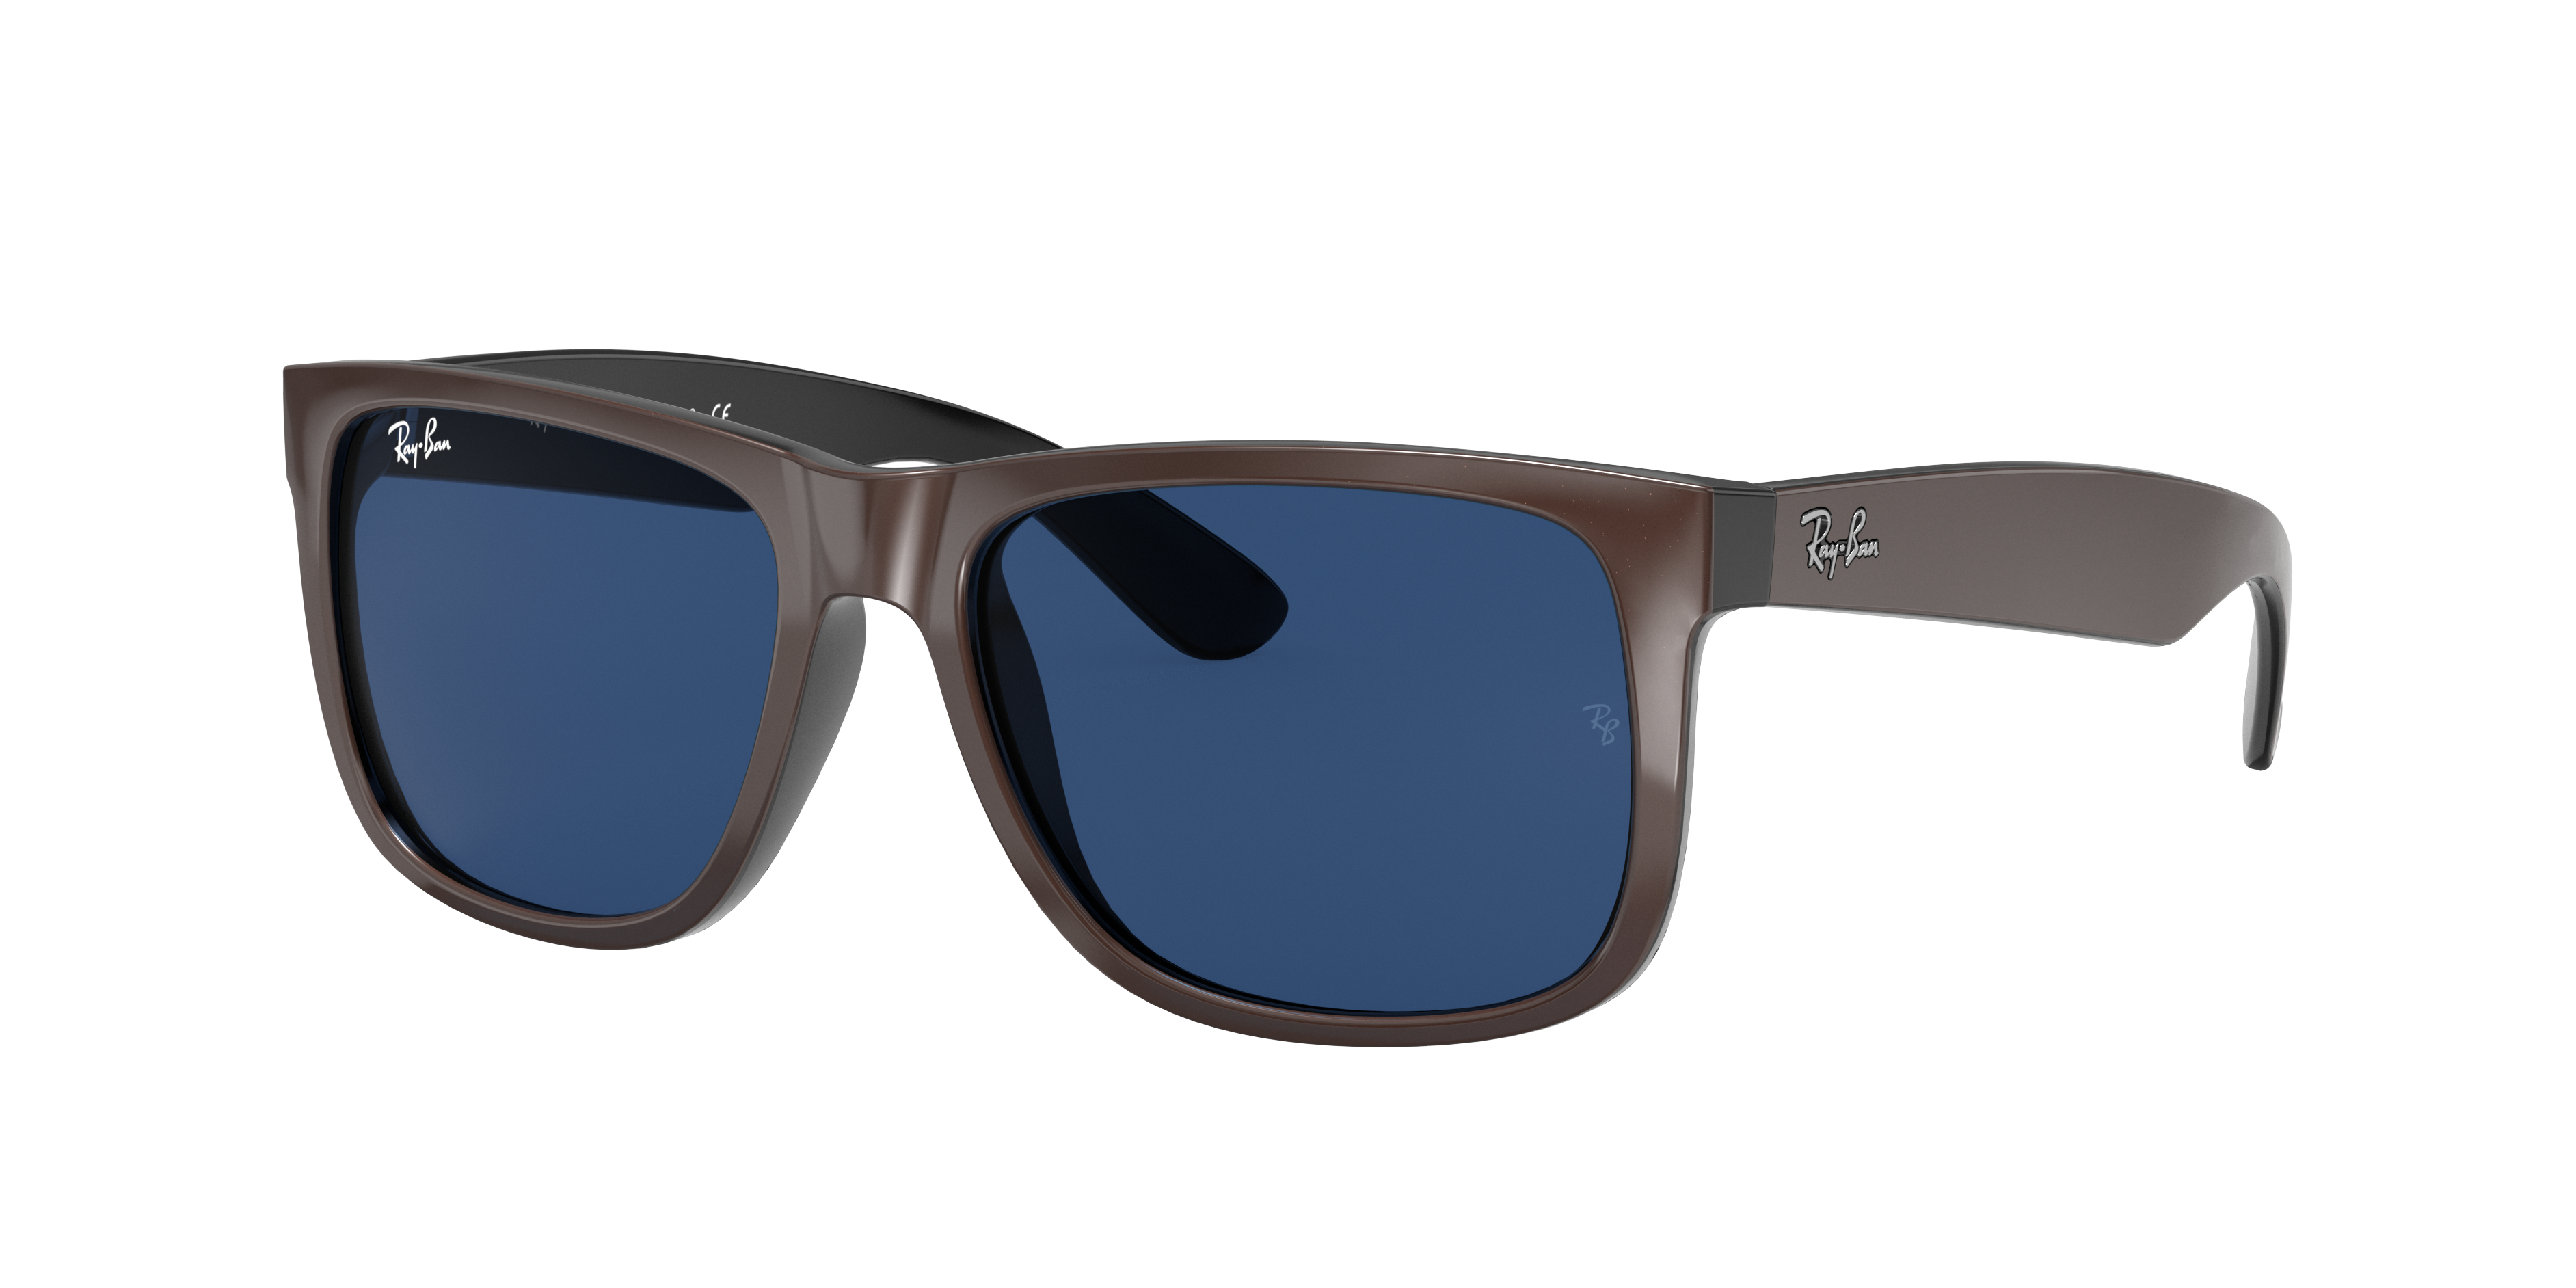 Ray-Ban Justin Color Mix Brown, Blue Lenses - RB4165